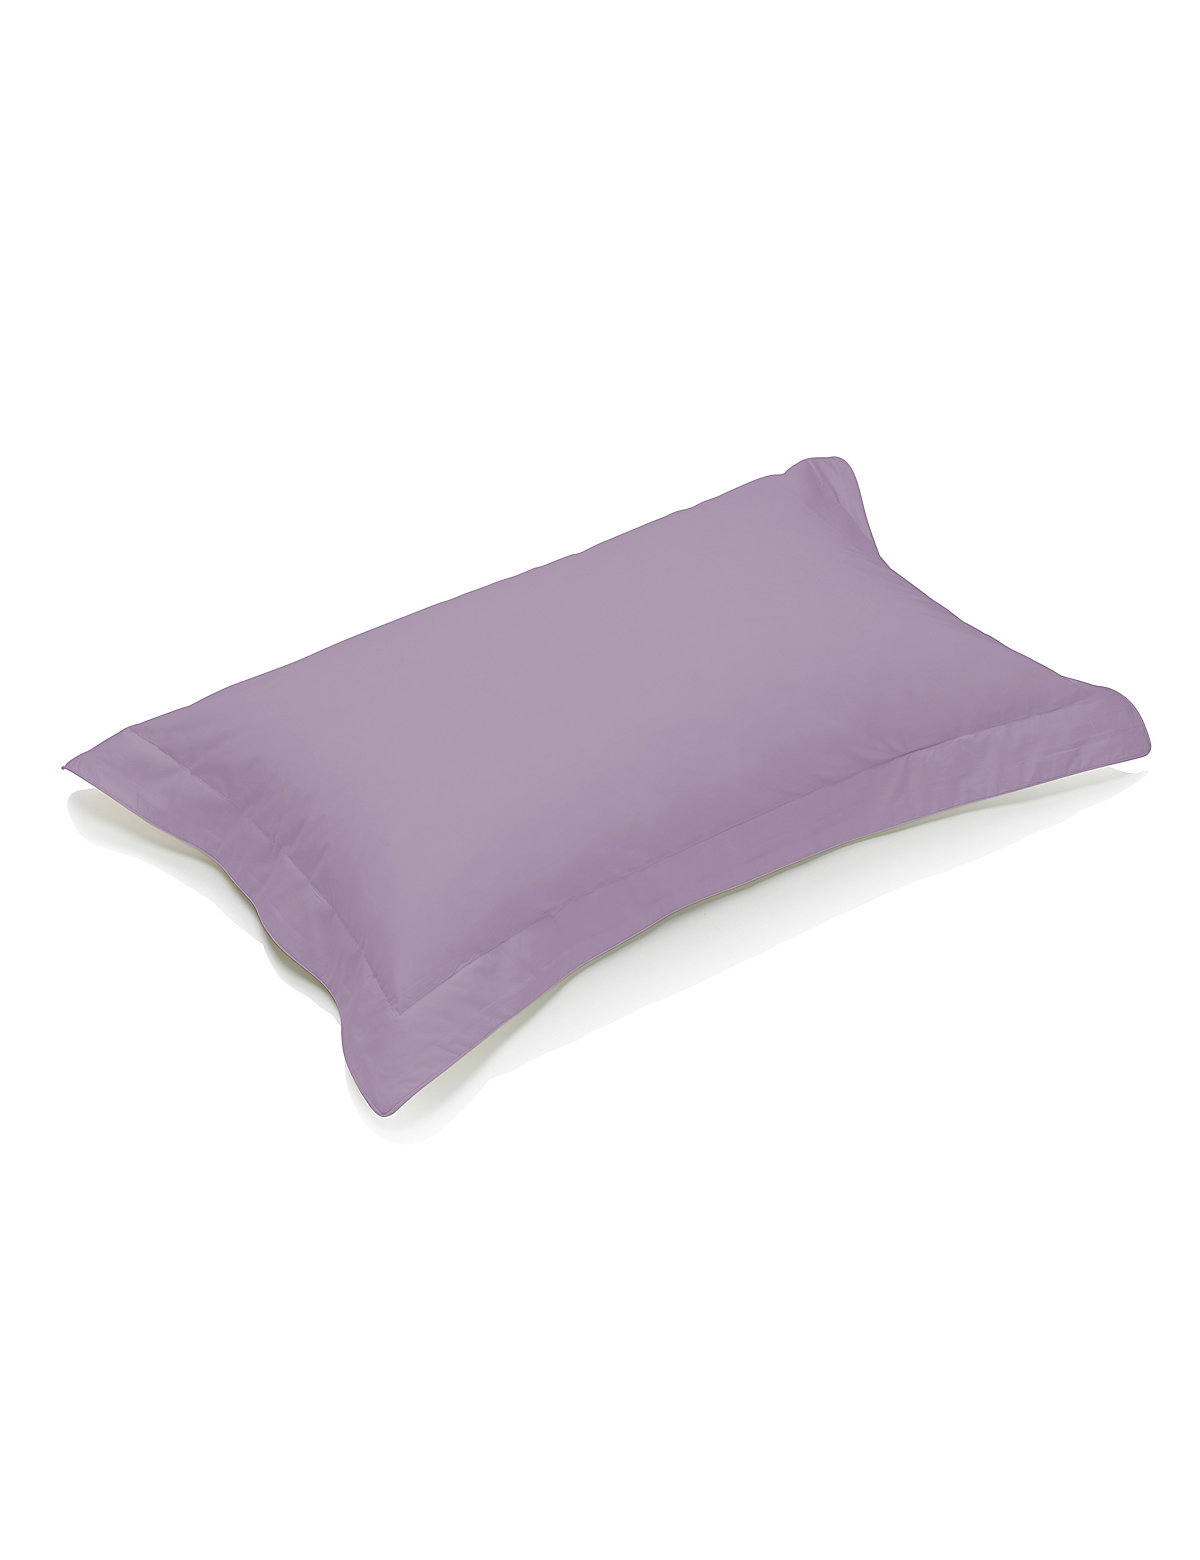 Pure Egyptian Cotton 230 Thread Count Oxford Pillowcase with StayNEW